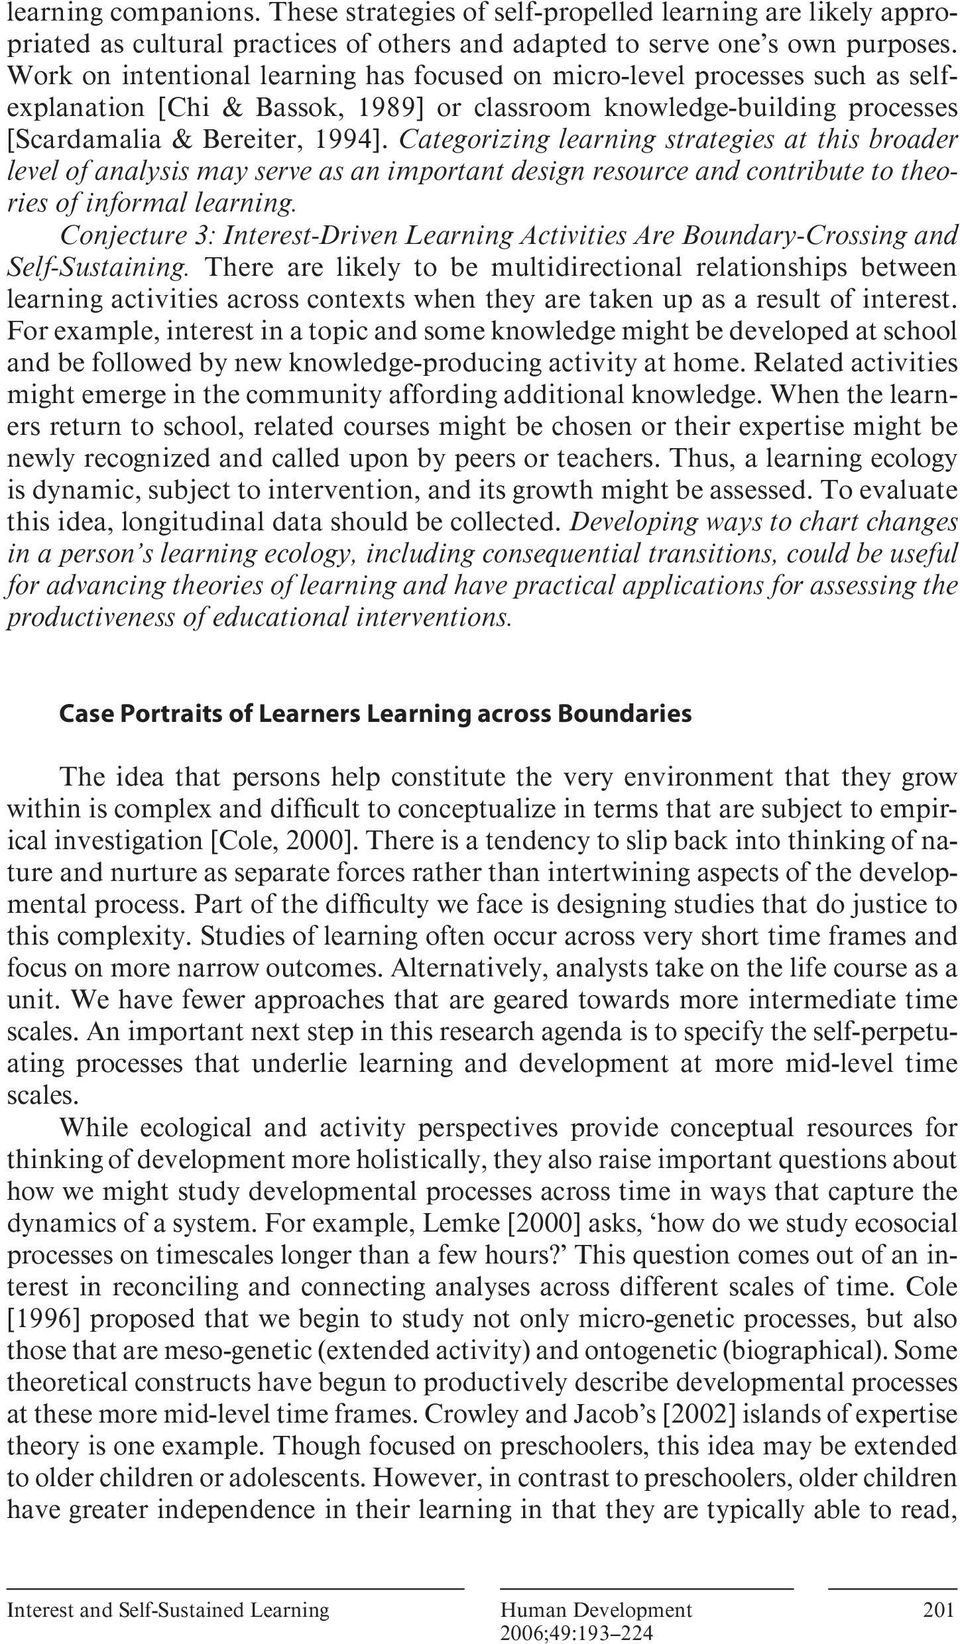 Categorizing learning strategies at this broader level of analysis may serve as an important design resource and contribute to theories of informal learning.